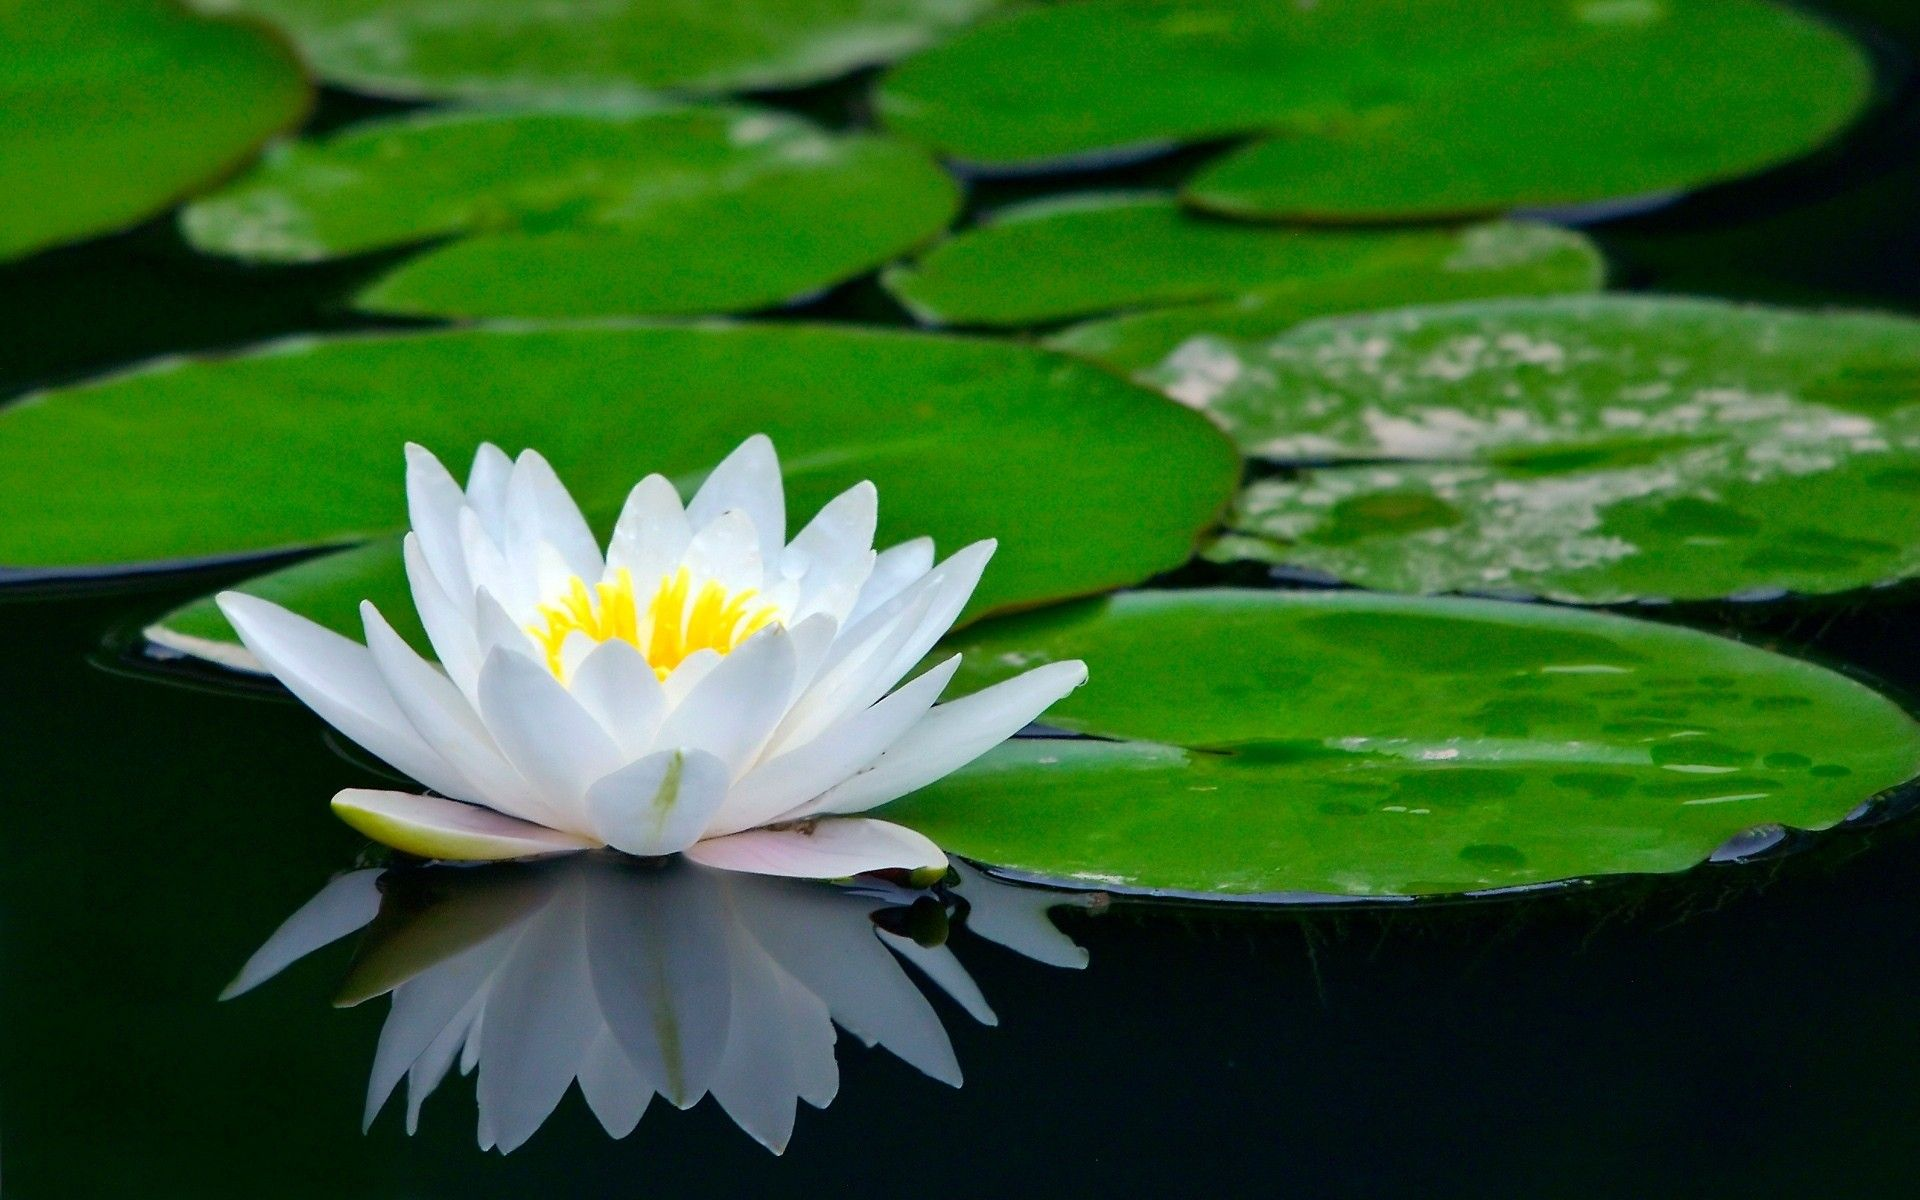 Why peace and nonviolence do not equal weakness lotus flower white lotus flower wallpaper free garden drawing radiohead illustration wallpaper archived at flower wallpaper izmirmasajfo